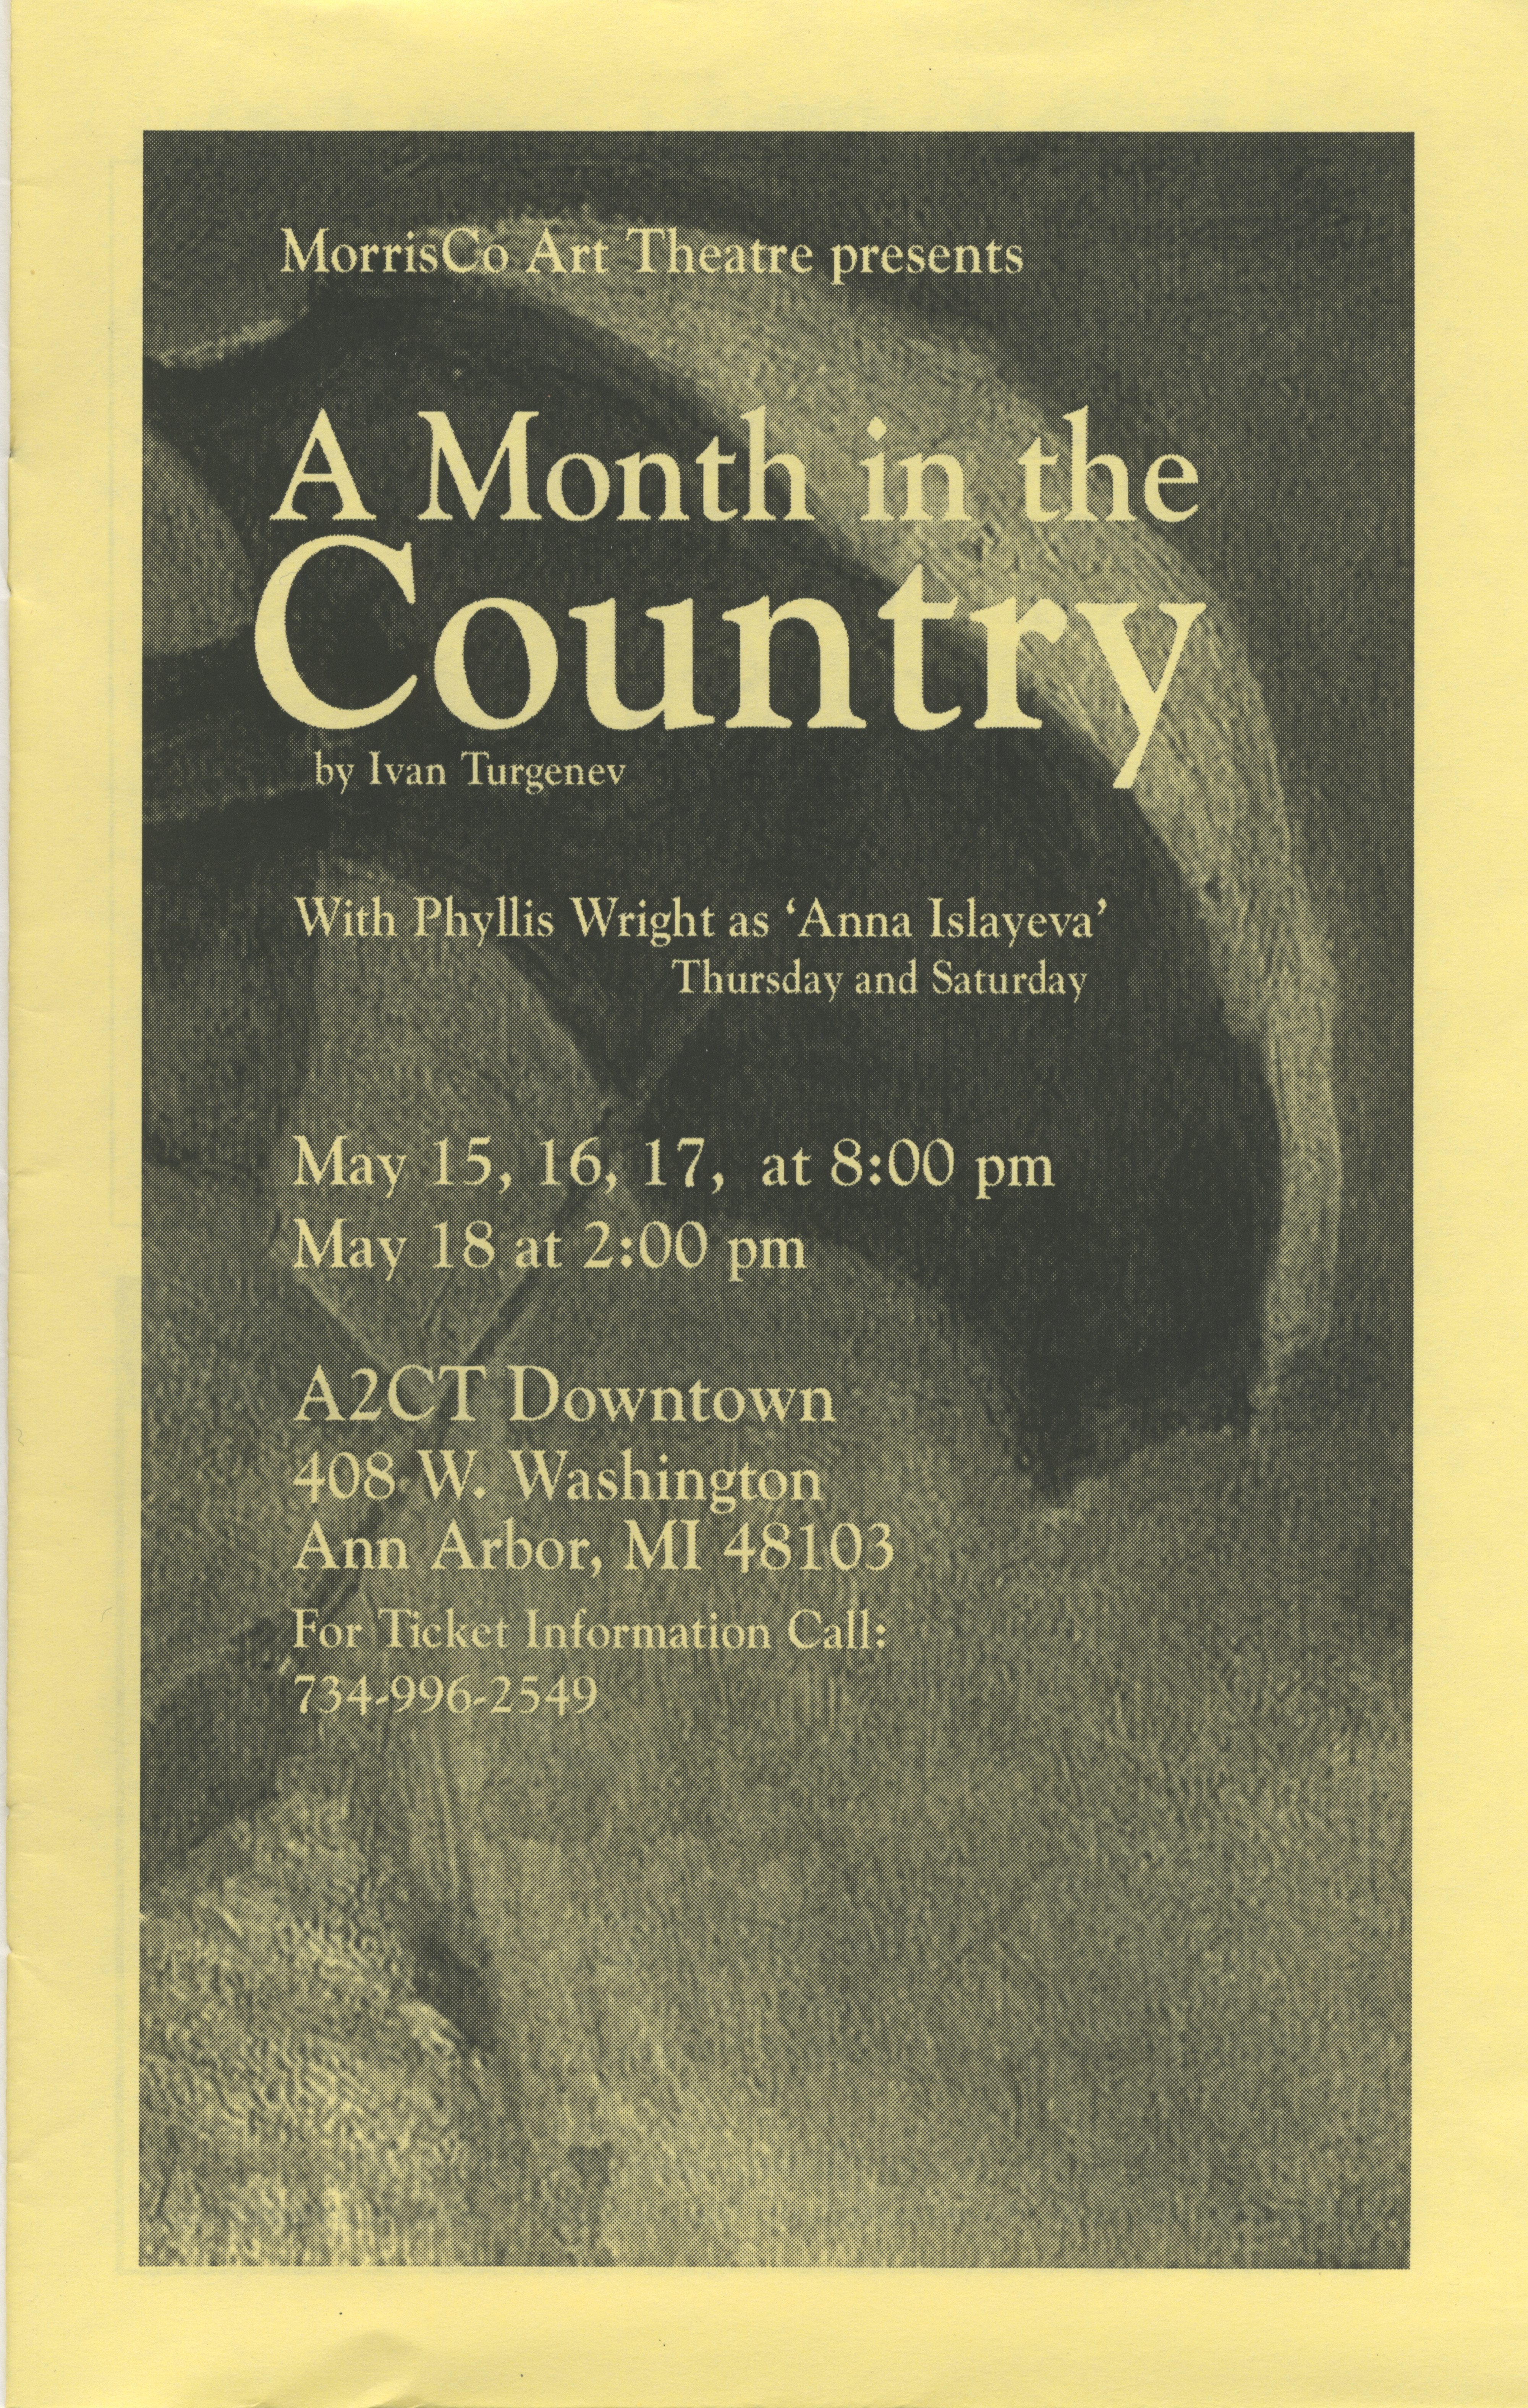 Ann Arbor Civic Theatre Program: The Girls of the Garden Club, May 01, 2003 image